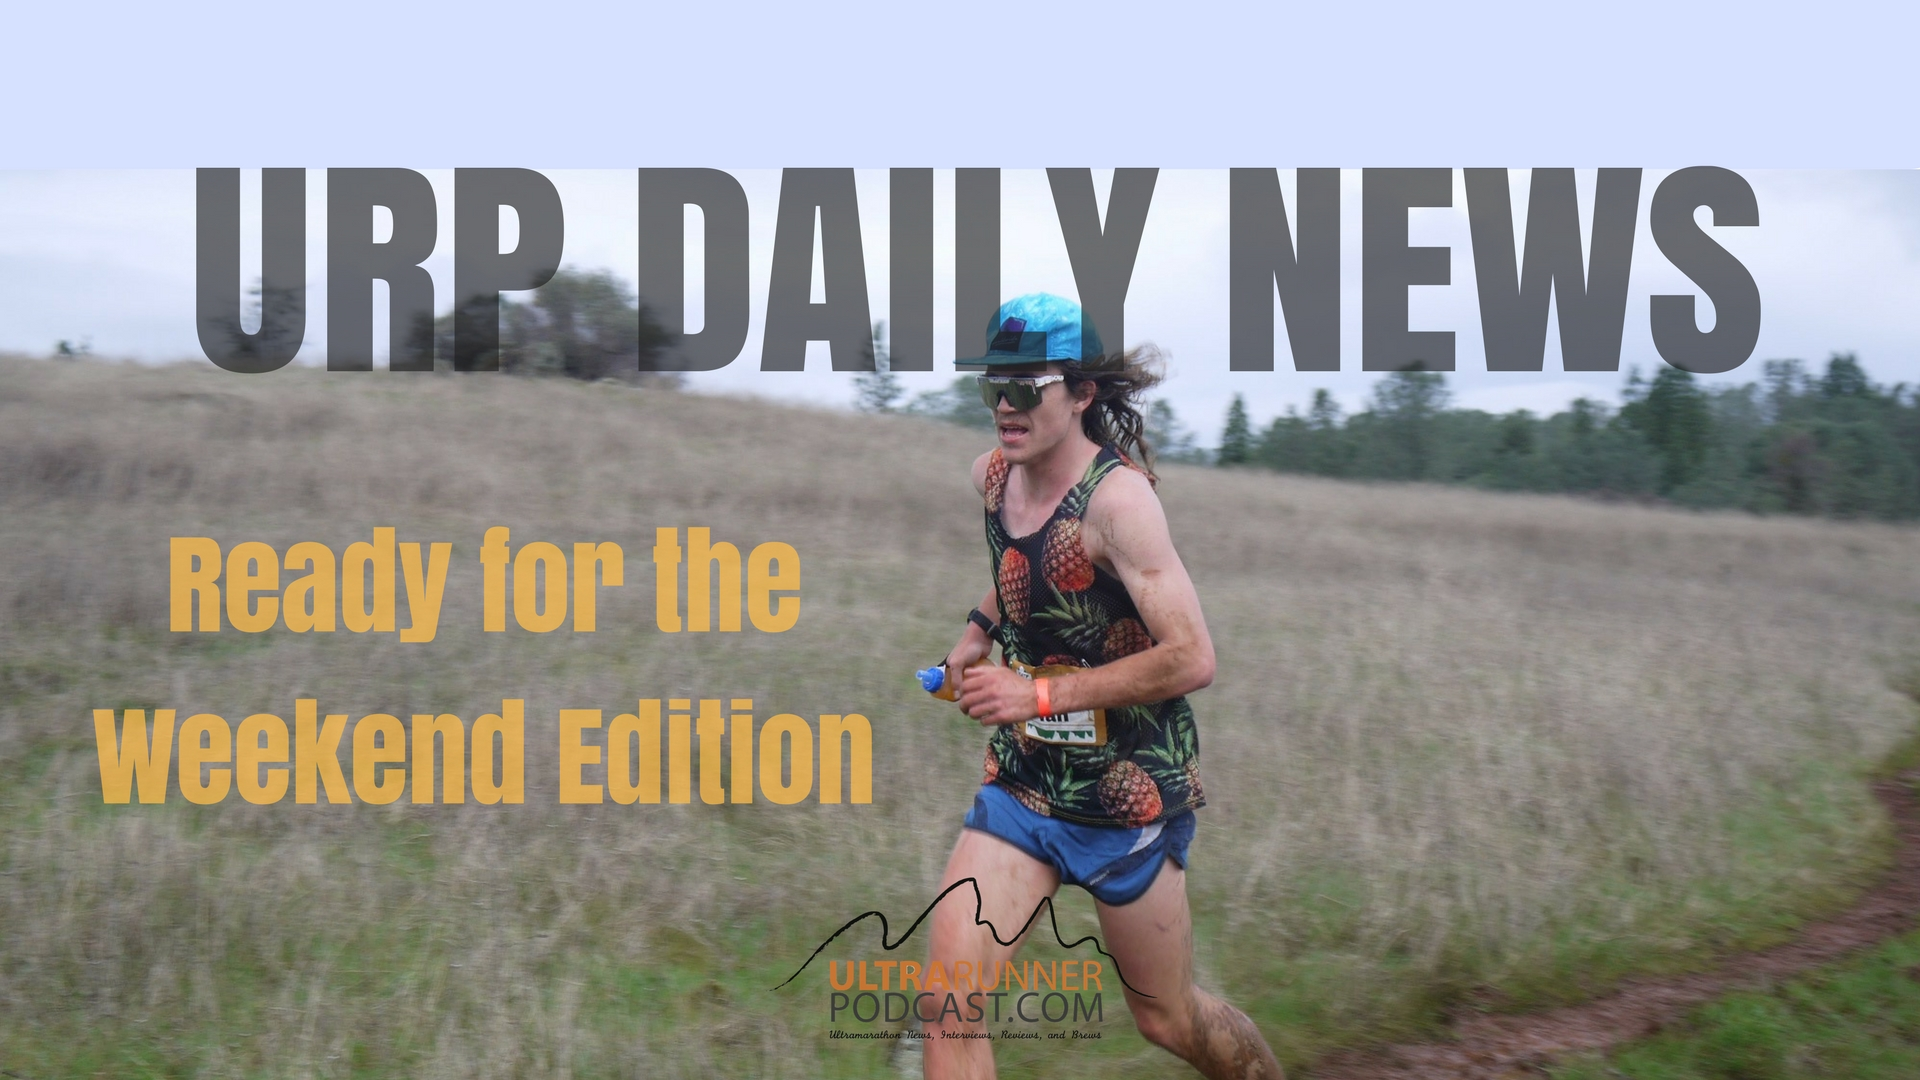 ultramarathon news